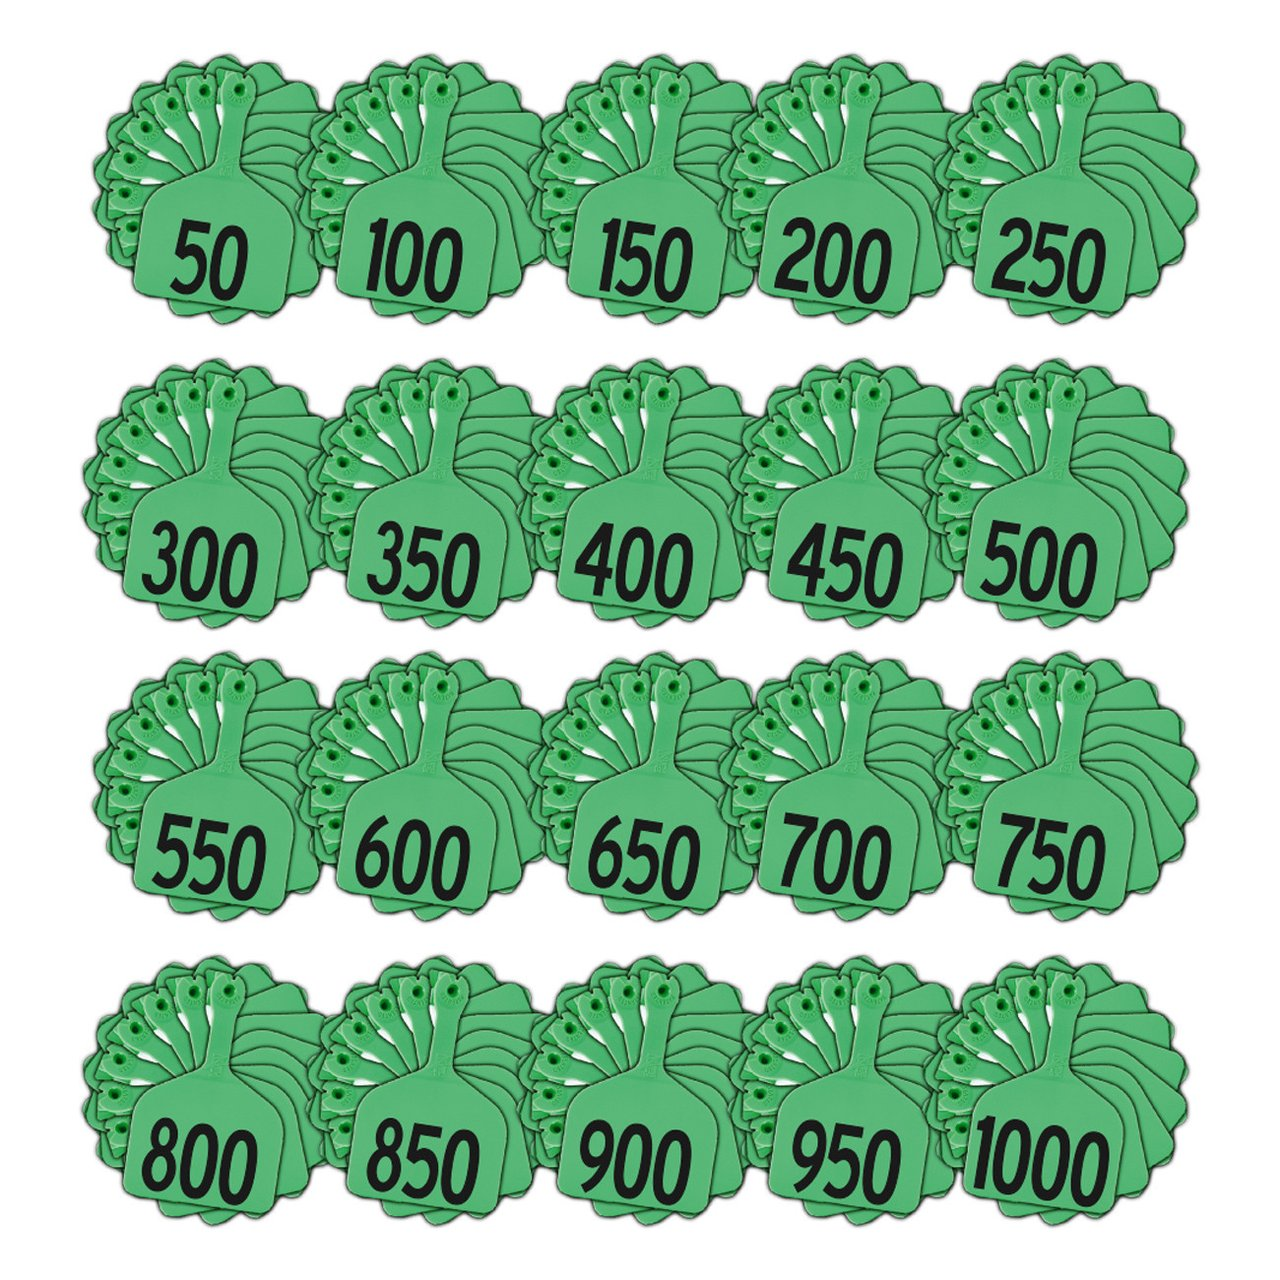 Z Tags 1 Piece Feedlot Stamped 1-1000 In Bundles Of 50 (Green) - Pre-Printed Tags Z Tags - Canada